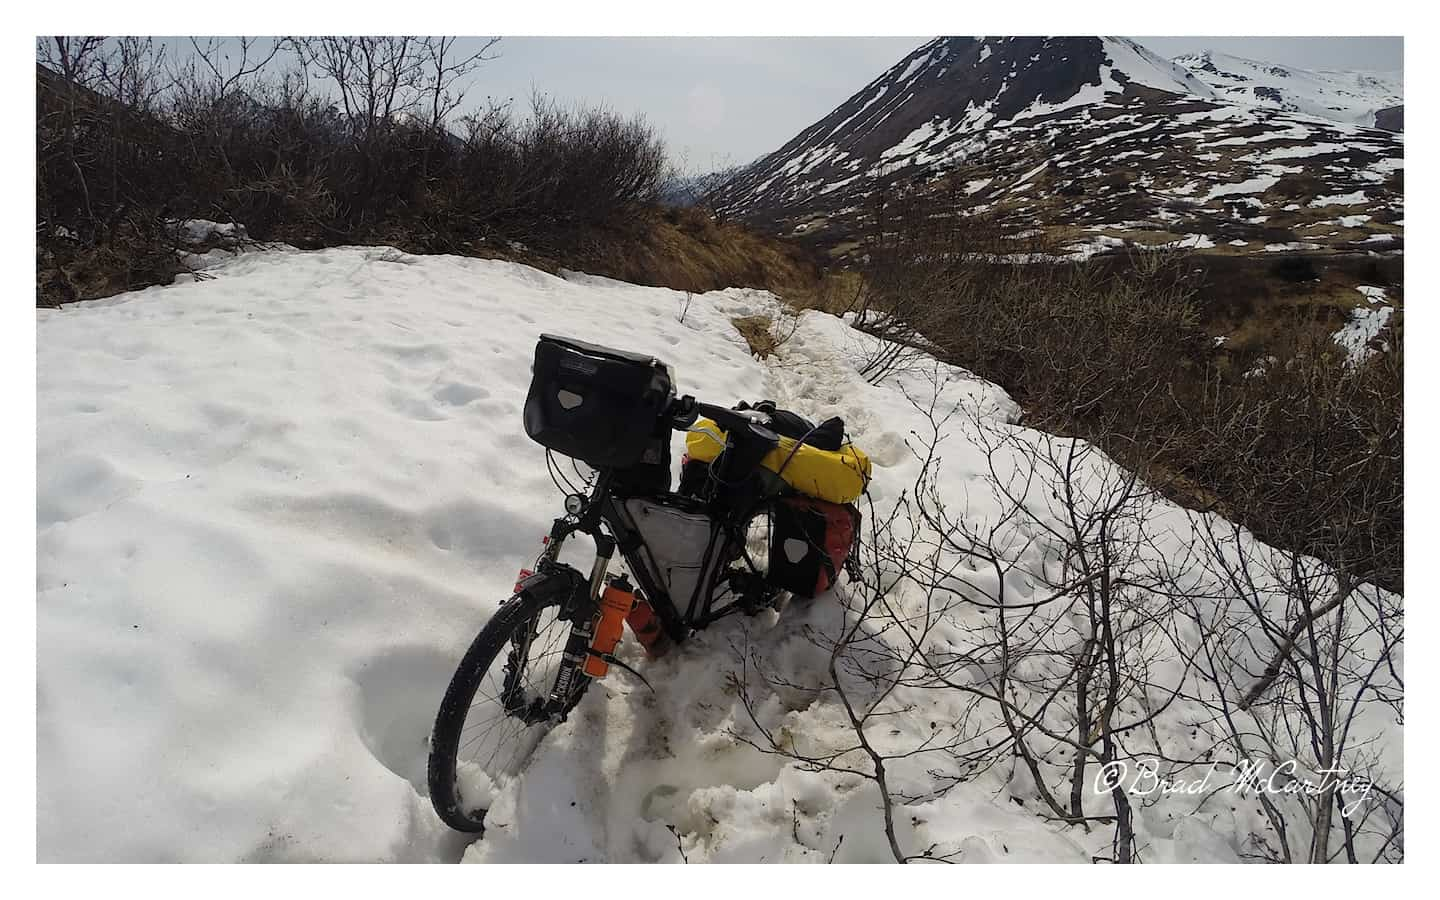 Bikepacking through the snow on Devils Pass